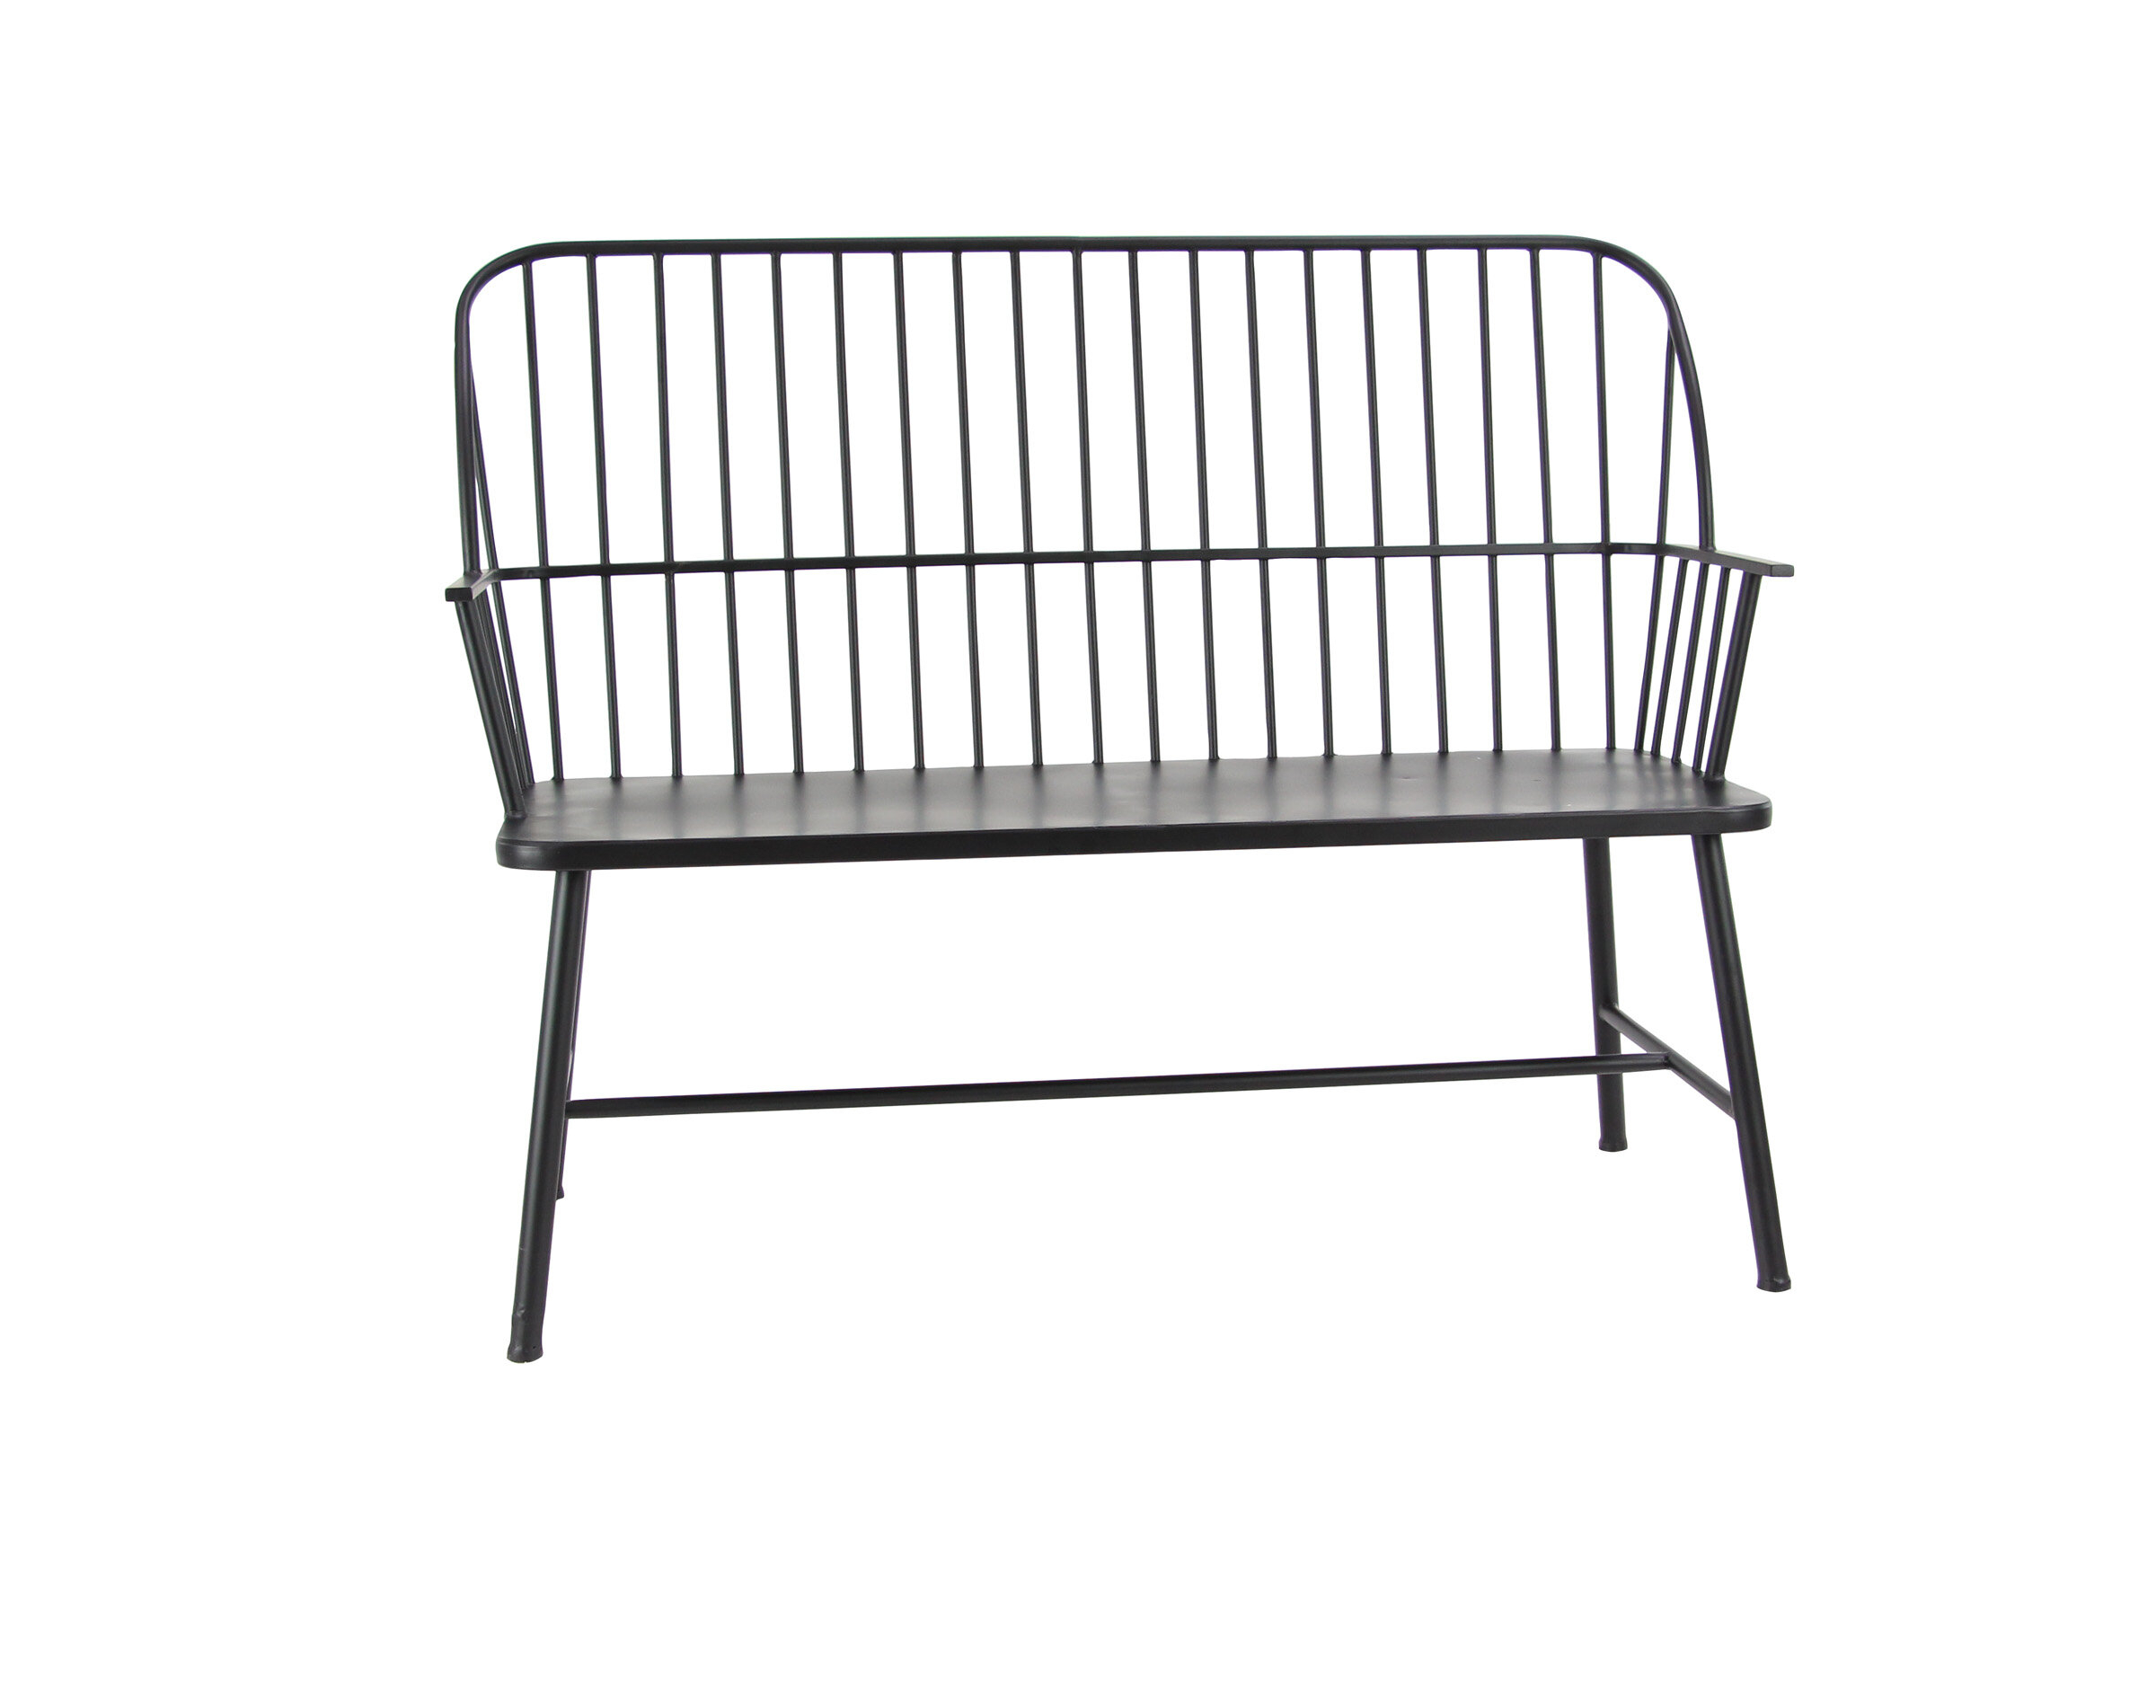 Metal Patio Benches You'Ll Love In 2020 | Wayfair With Regard To Aranita Tree Of Life Iron Garden Benches (View 16 of 25)